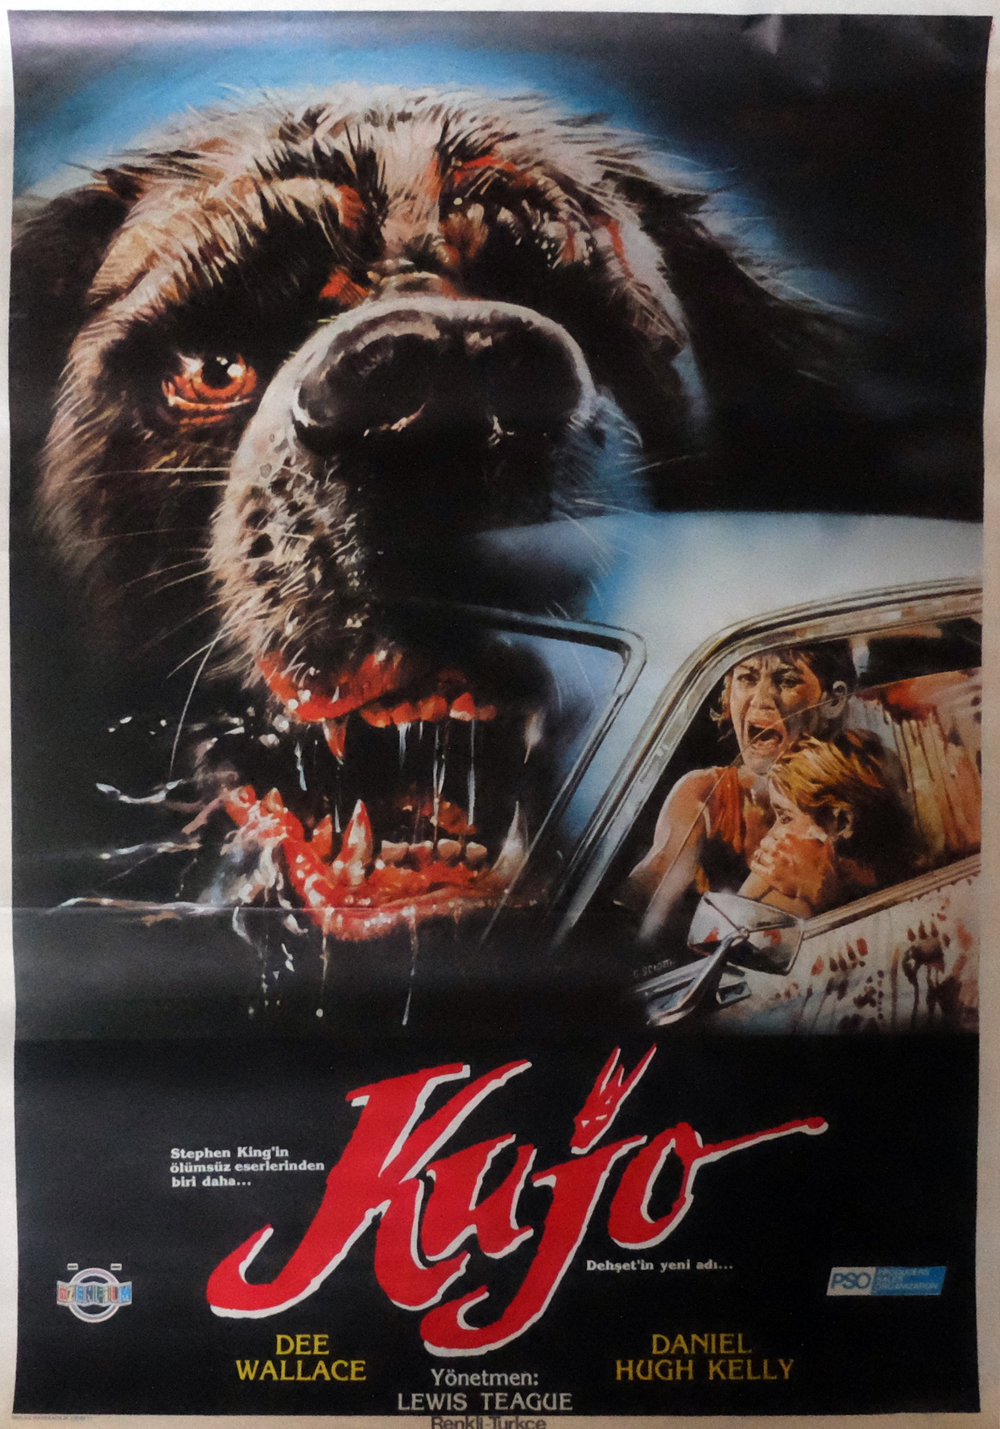 cujo-movie-poster-29x40-in-turkish-1983-lewis-teague-dee-wallace.jpg